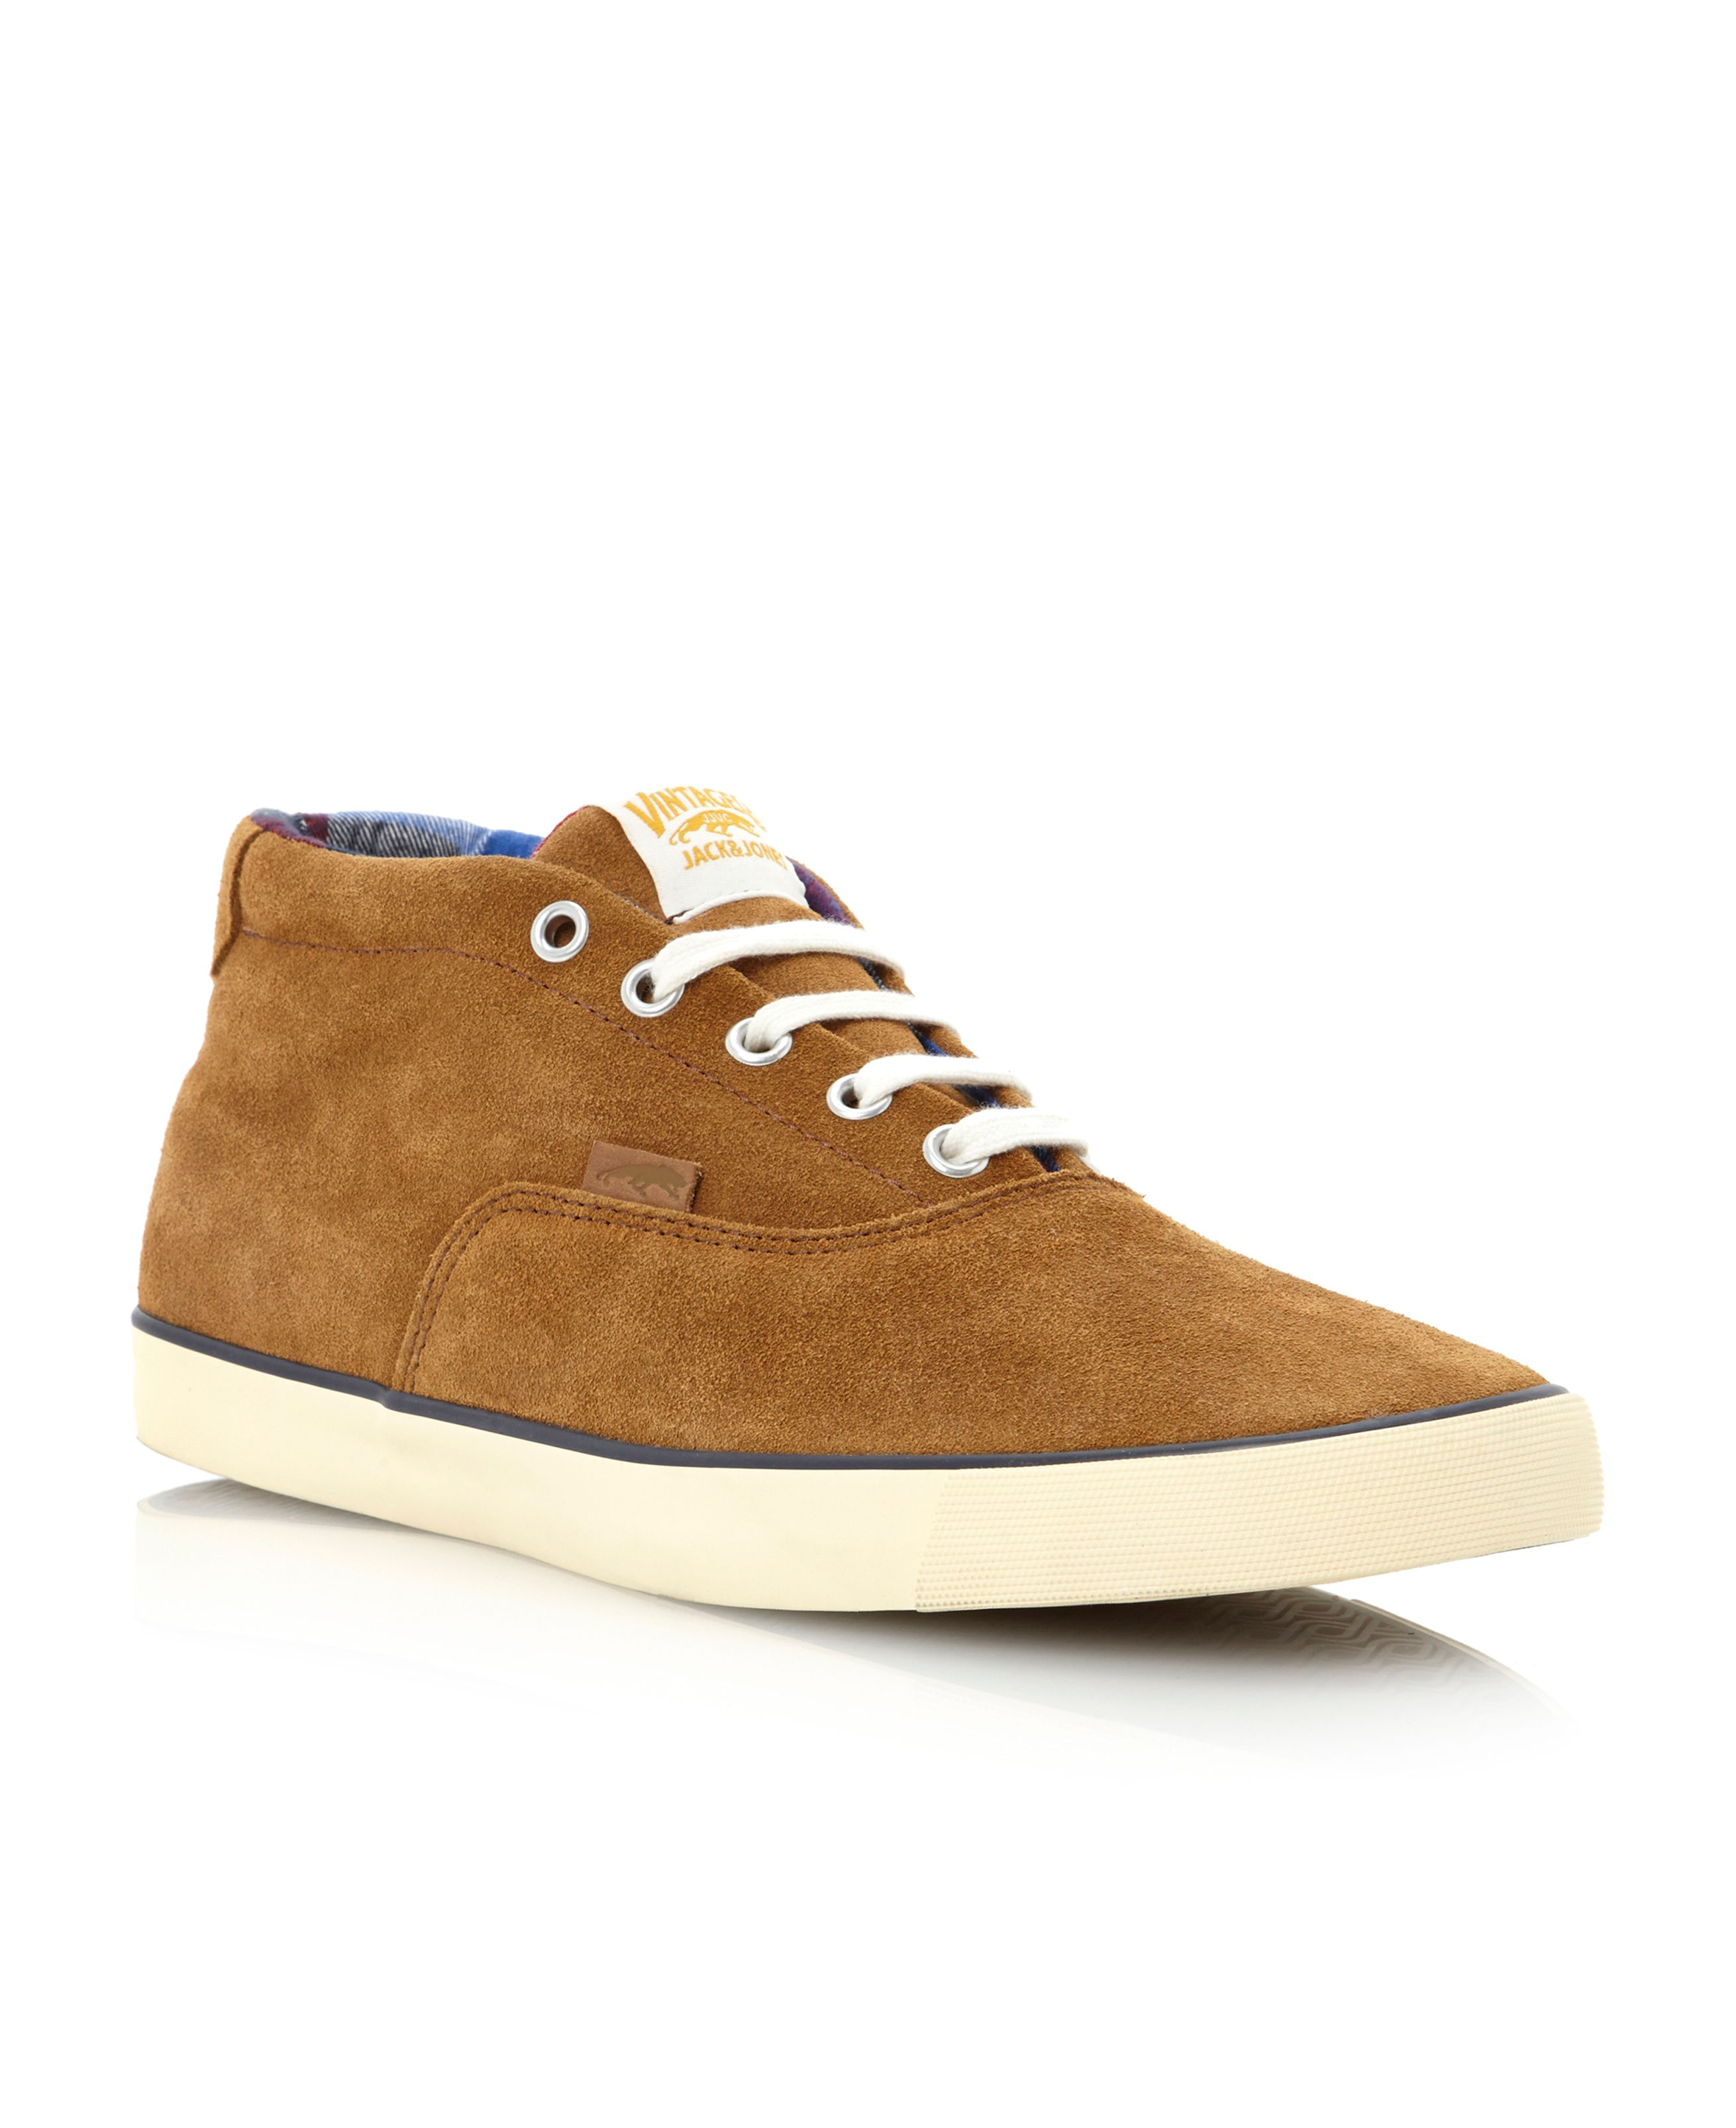 Jj Surf Plain suede hi top boot